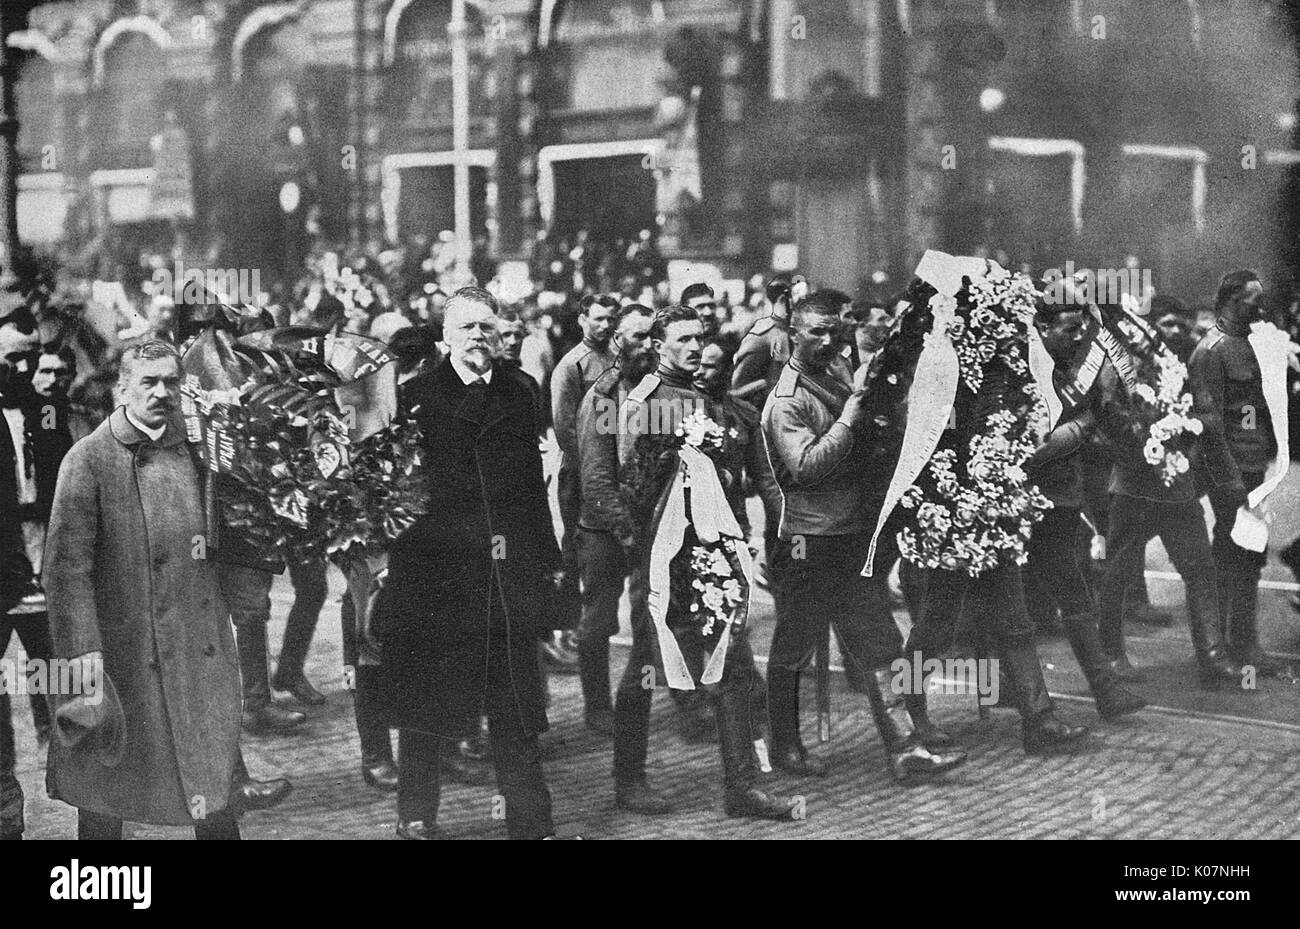 100 years ago. Public execution in Petrovsky Park 42